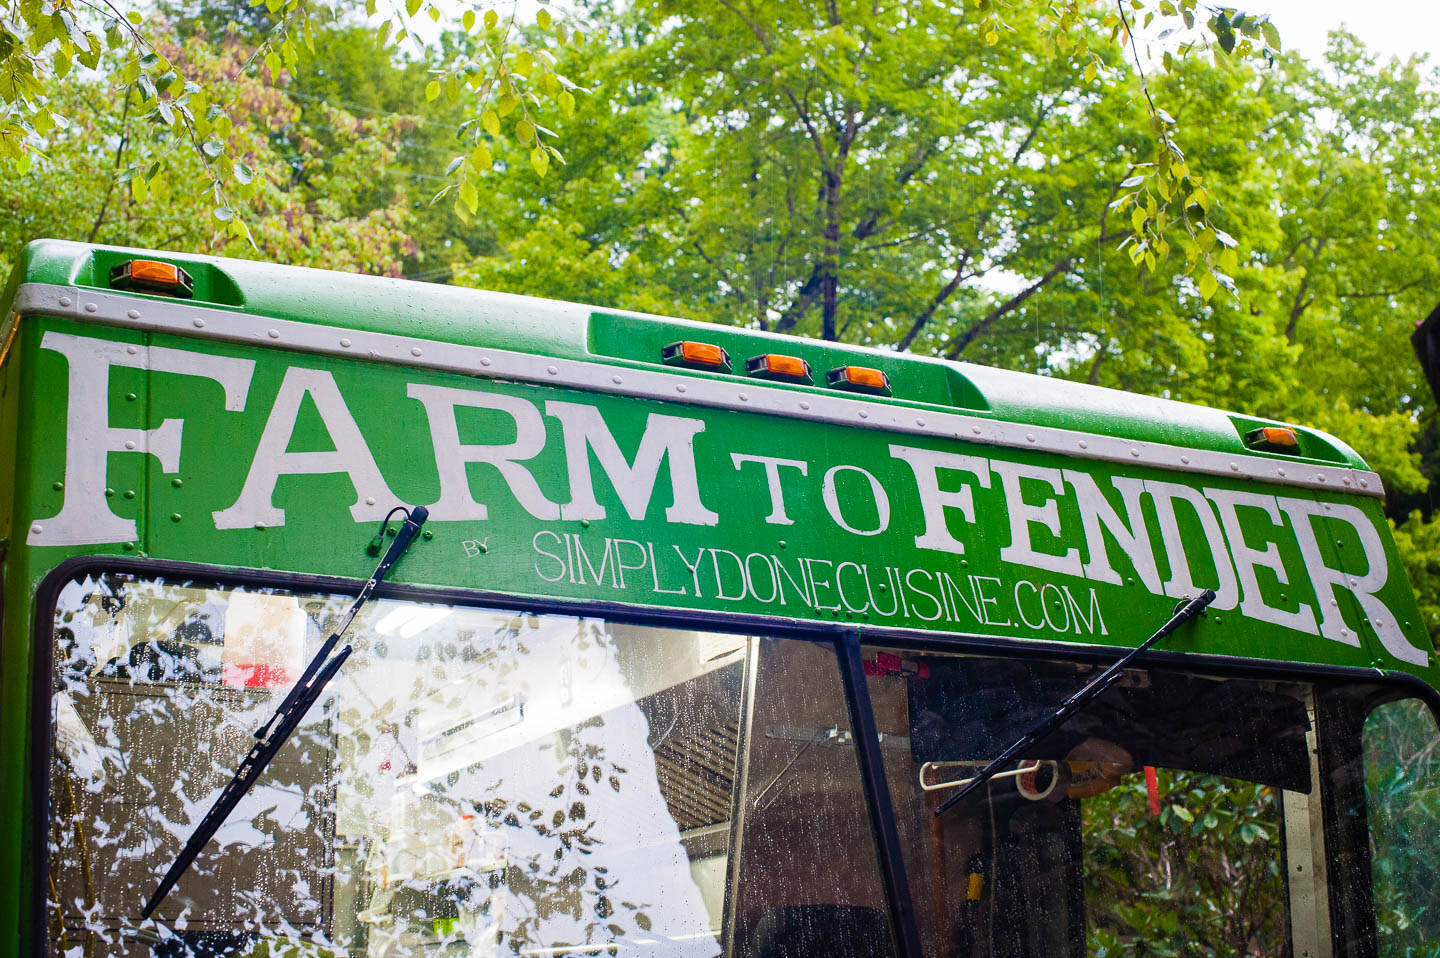 Farm to Fender food truck parked in front of a Montreat North Carolina wedding venue for some amazing food selections at this Asheville area wedding